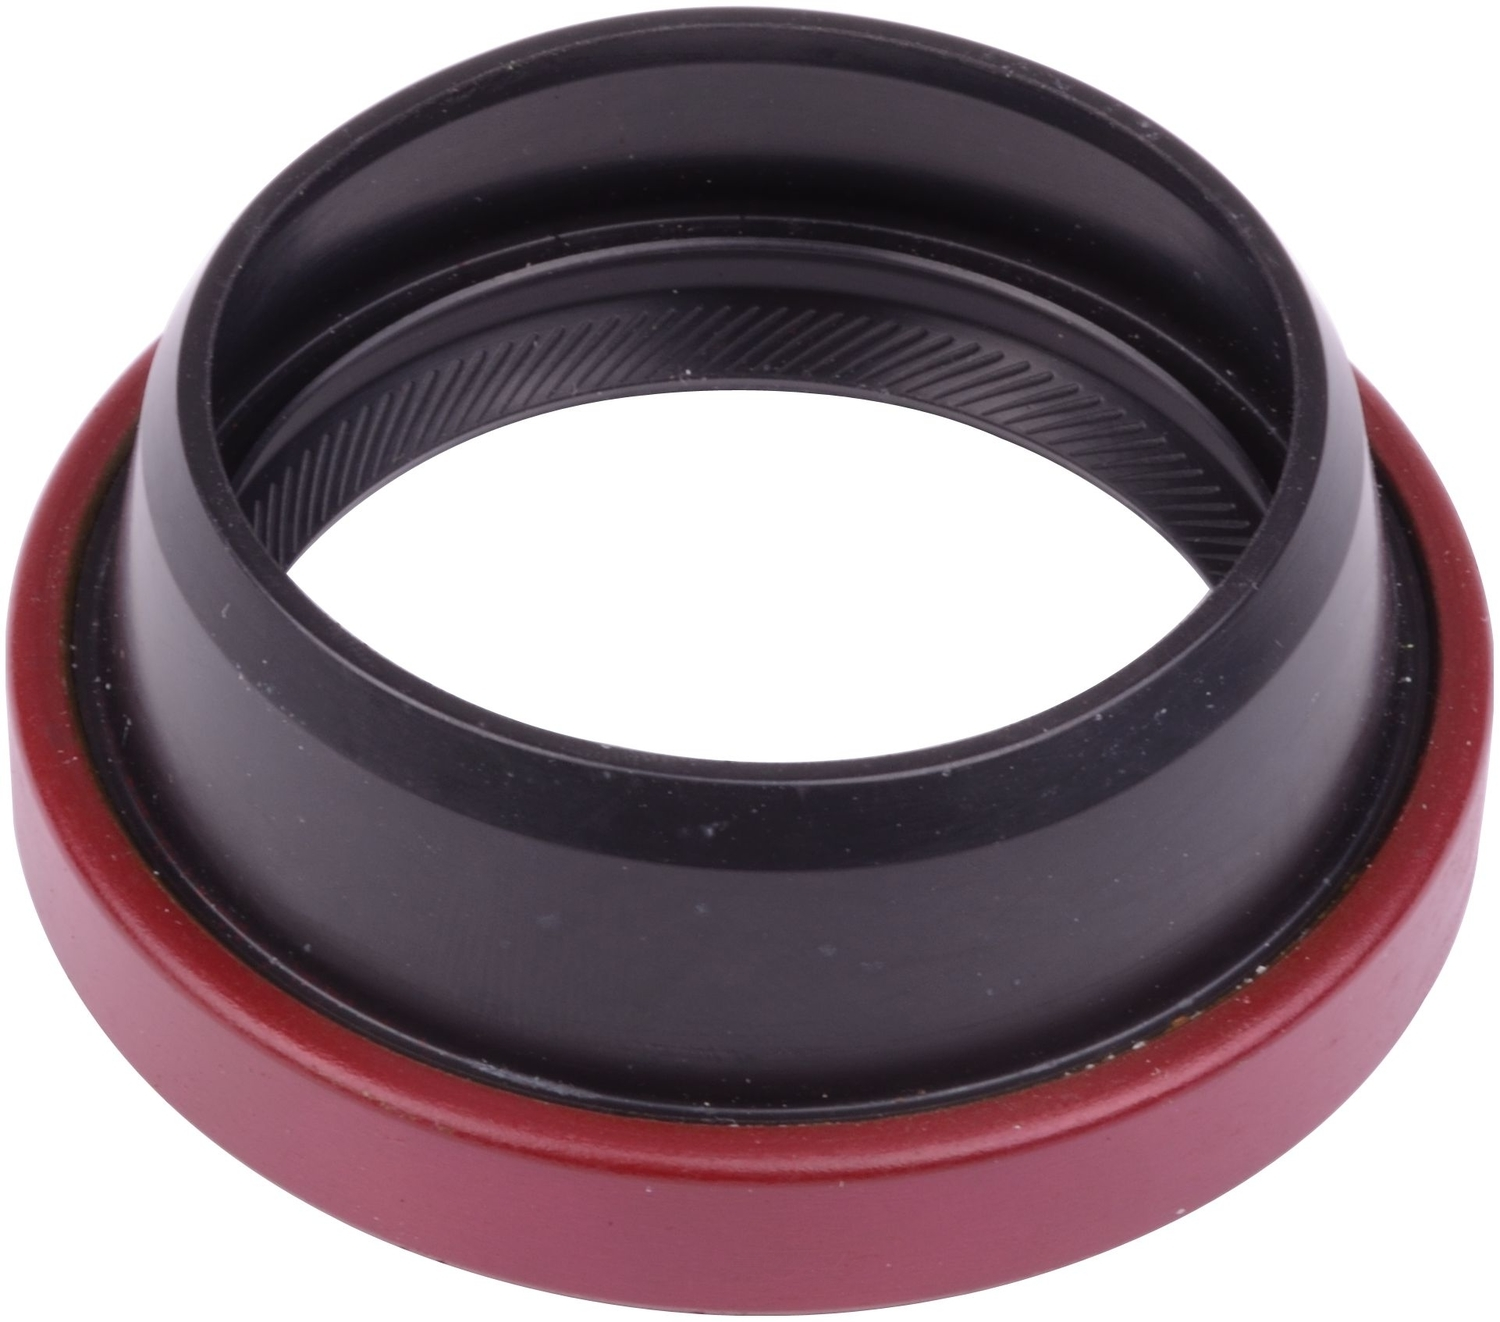 SKF (CHICAGO RAWHIDE) - Manual Trans Output Shaft Seal - SKF 18521